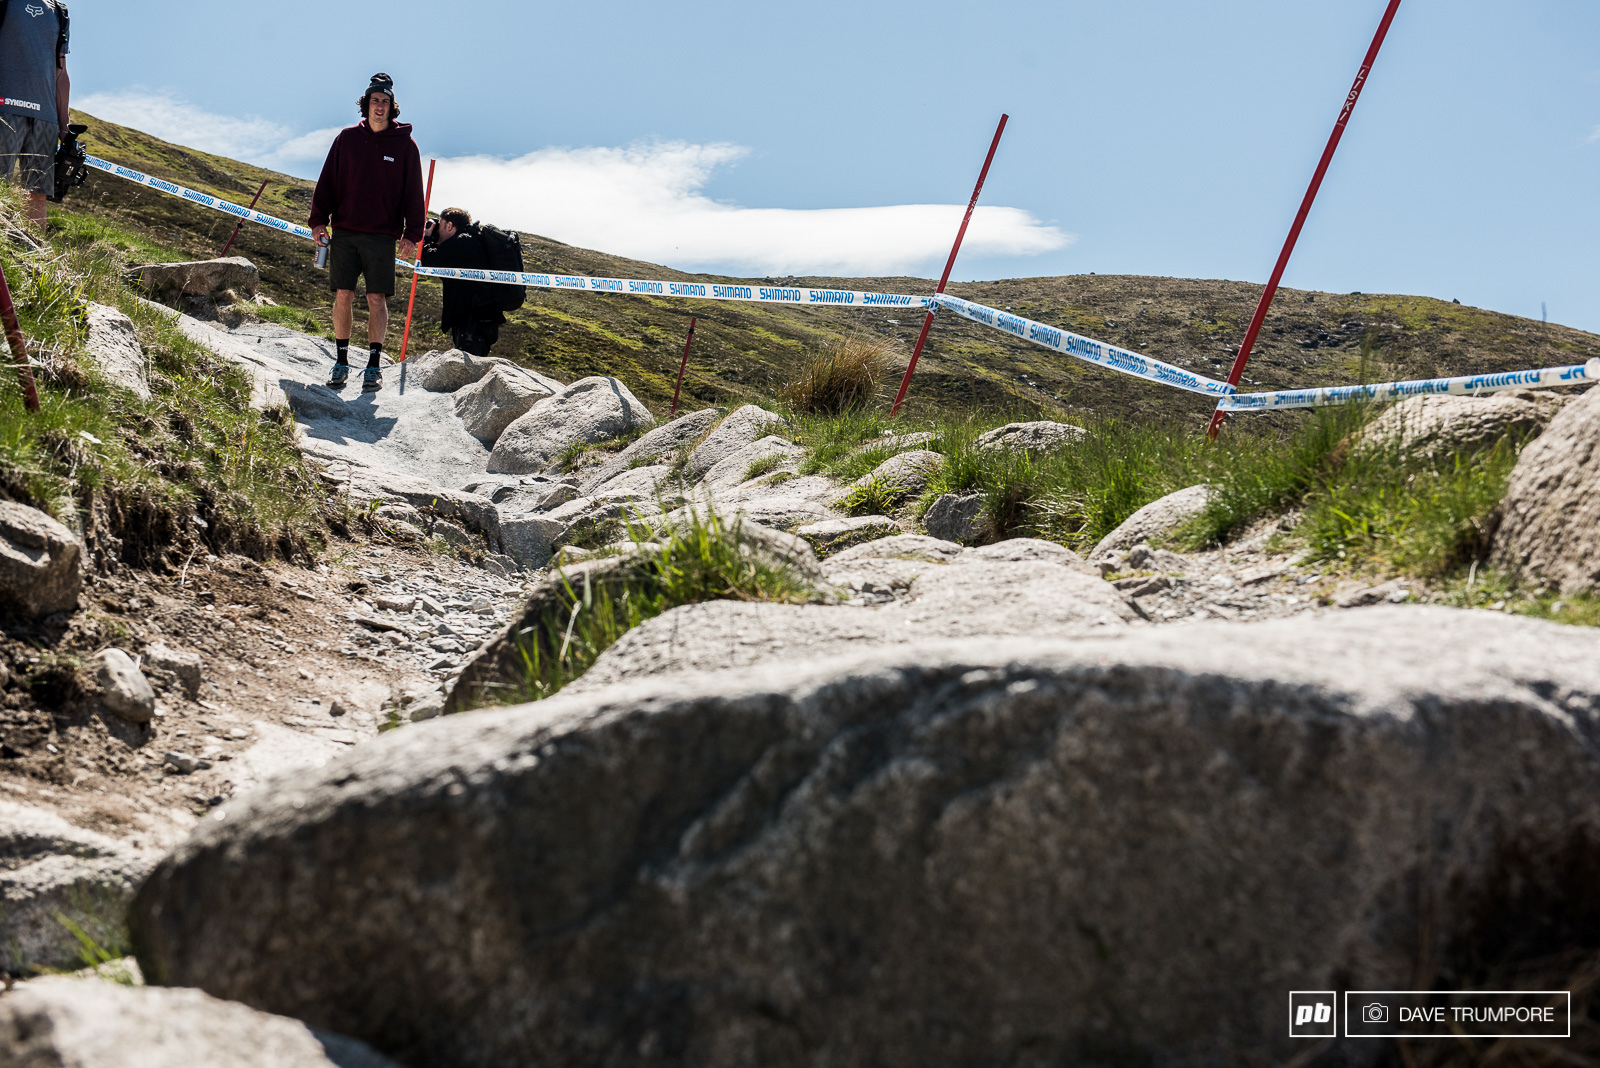 Get off line even by an inch in this high-speed section and you will be in a world of hurt.